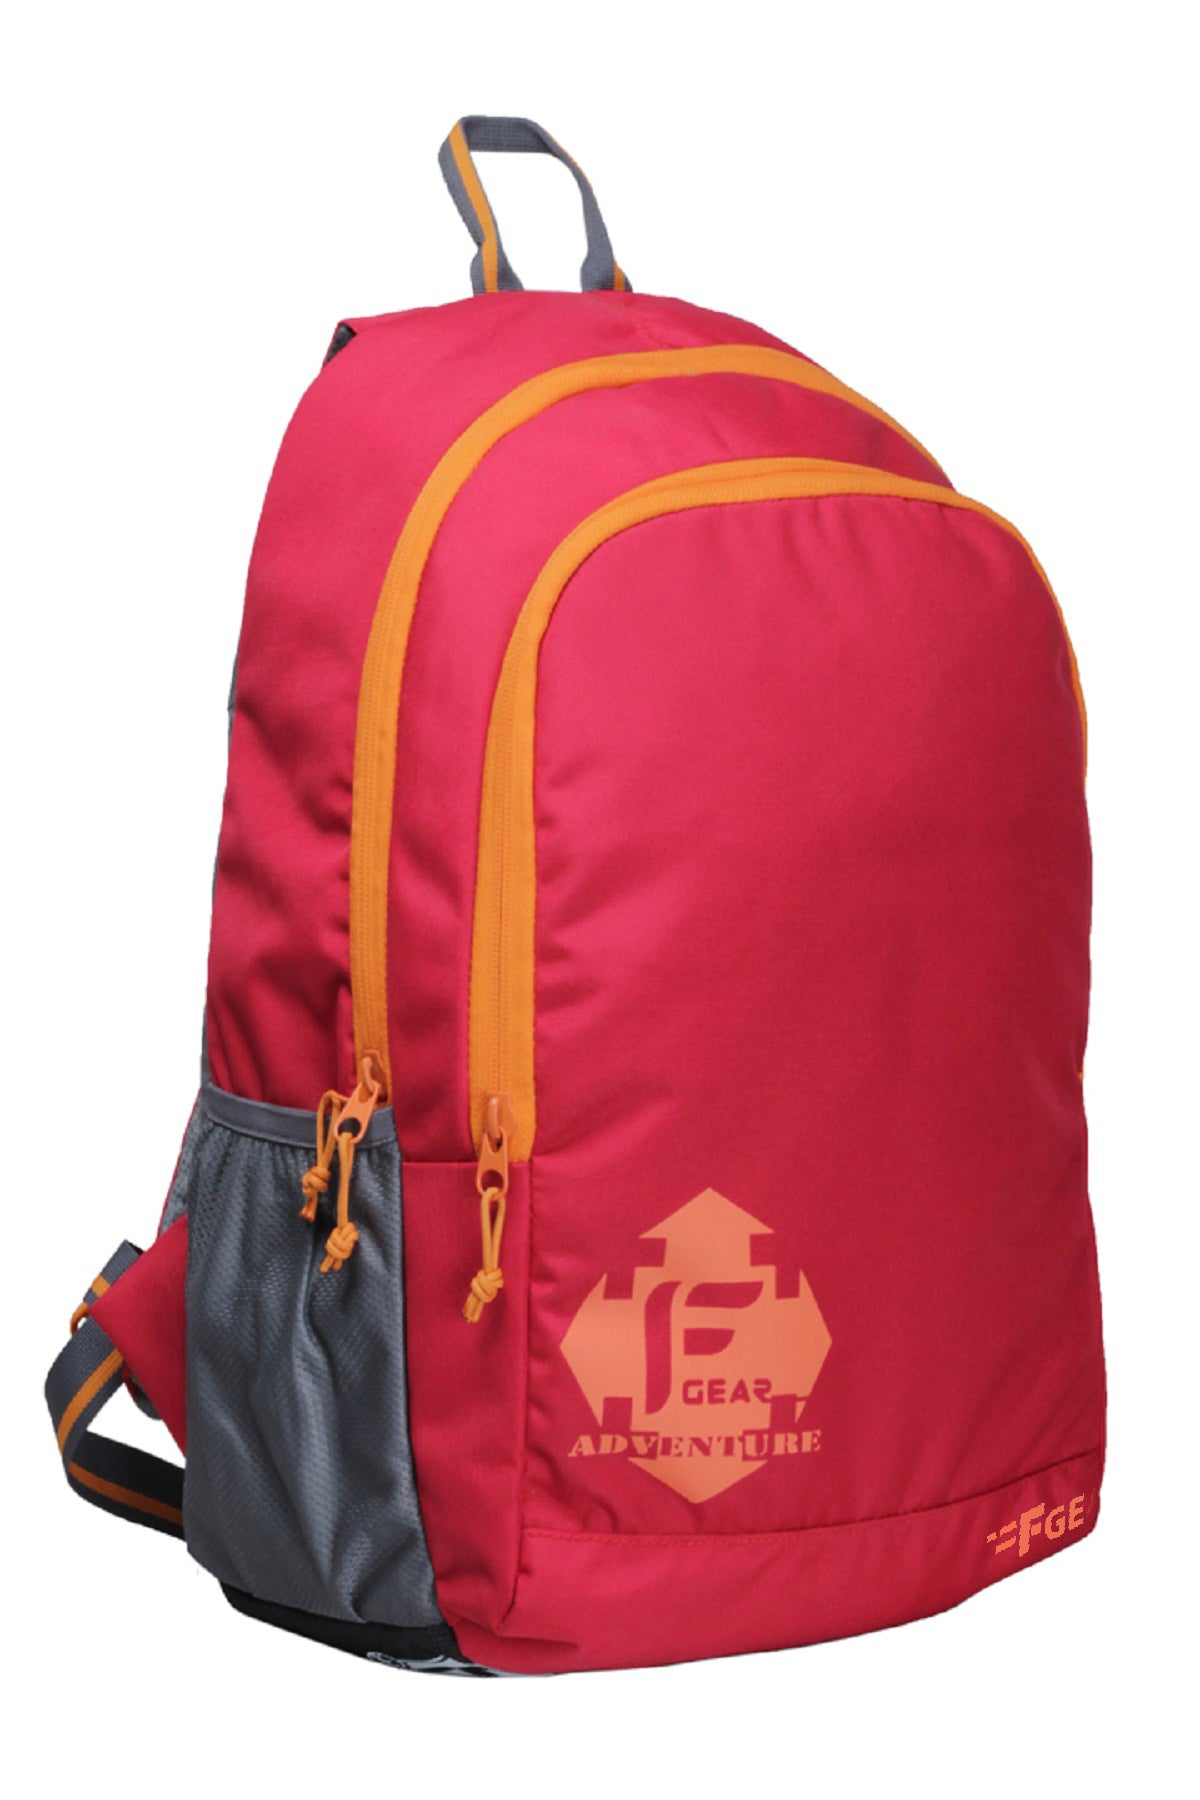 F Gear Castle Rugged Base 27 Liters Red Orange Backpack